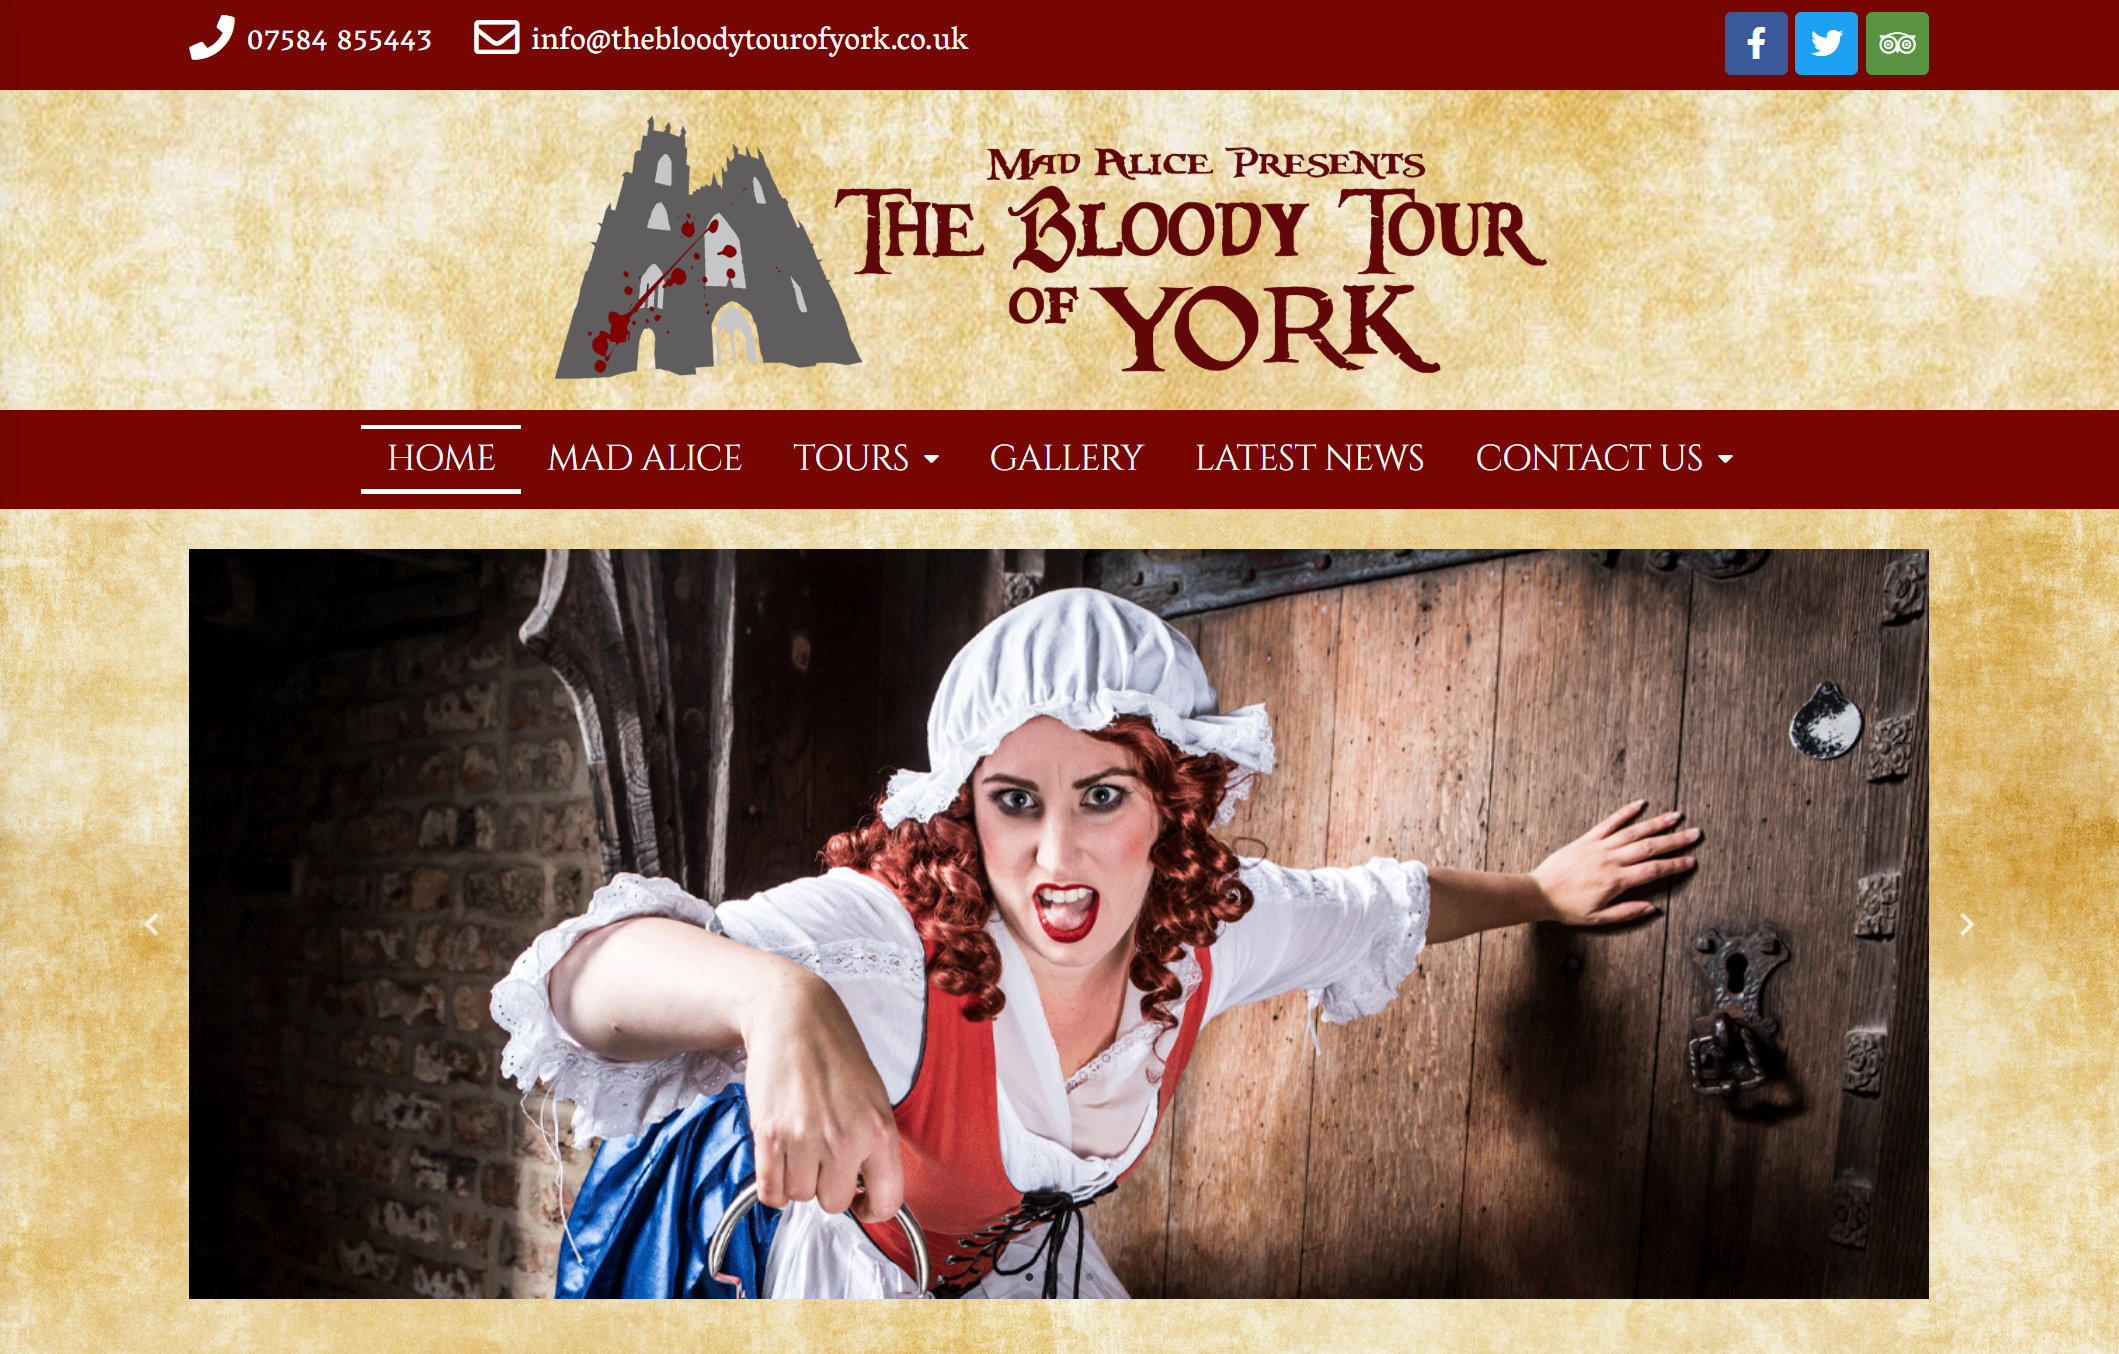 Website Launch – The Bloody Tour of York